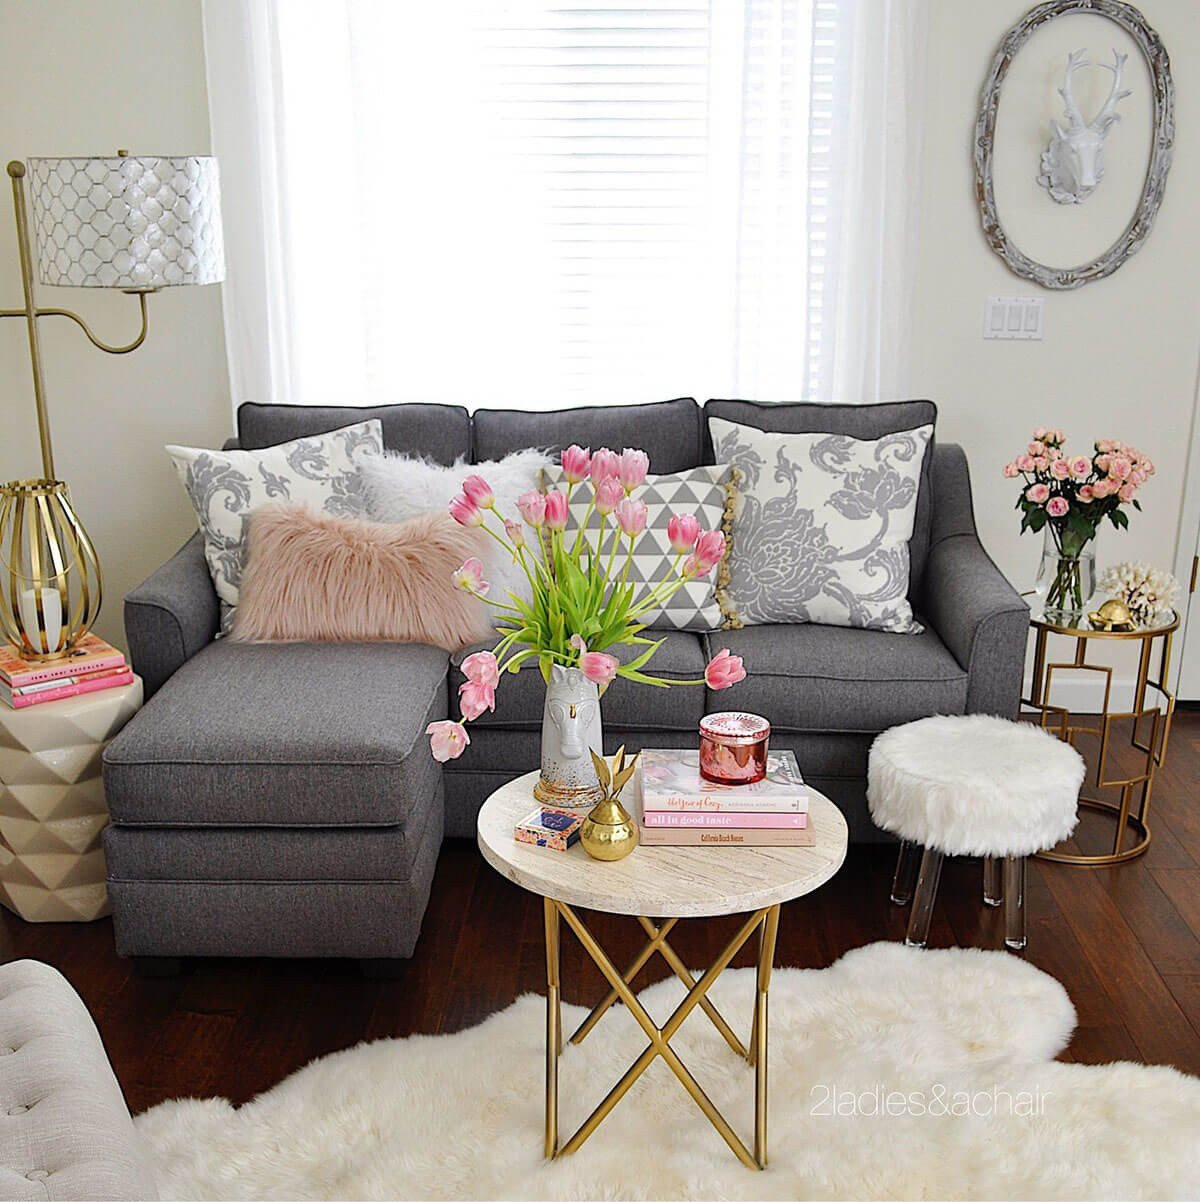 Small Gray Living Room Ideas Fresh 25 Best Small Living Room Decor and Design Ideas for 2019